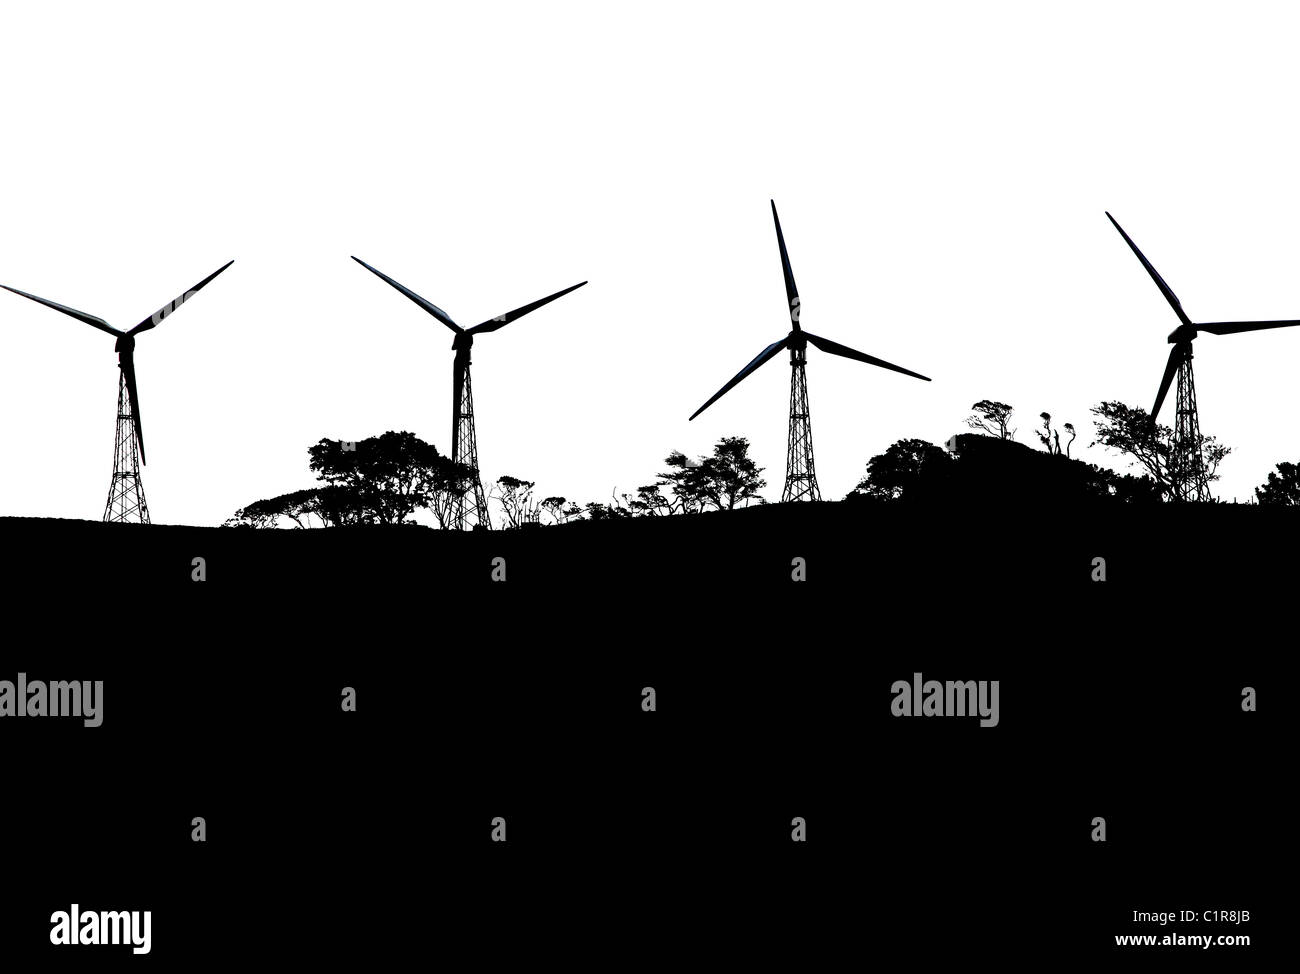 Wind turbine silhouettes on a hilltop above lake Arenal, Costa Rica - Stock Image